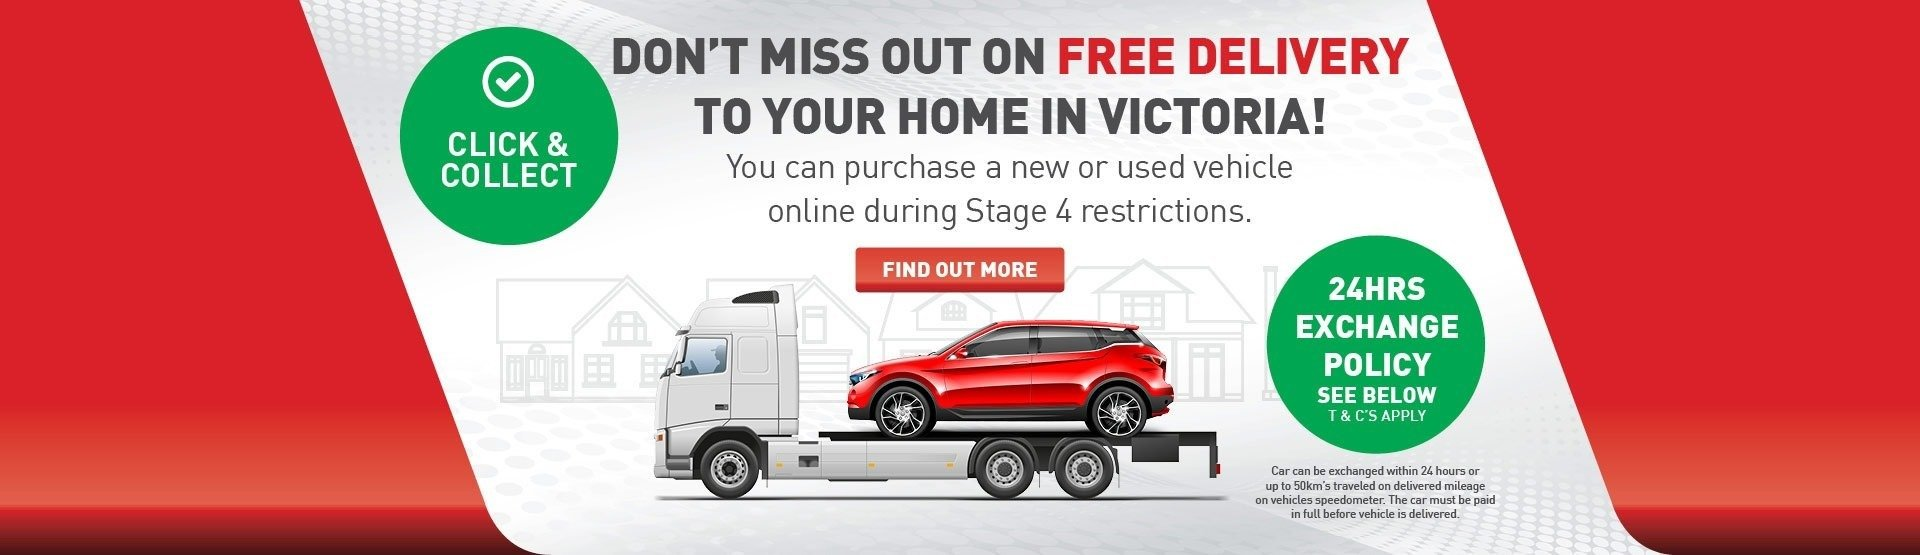 Werribee Nissan - Your Opportunity to Buy